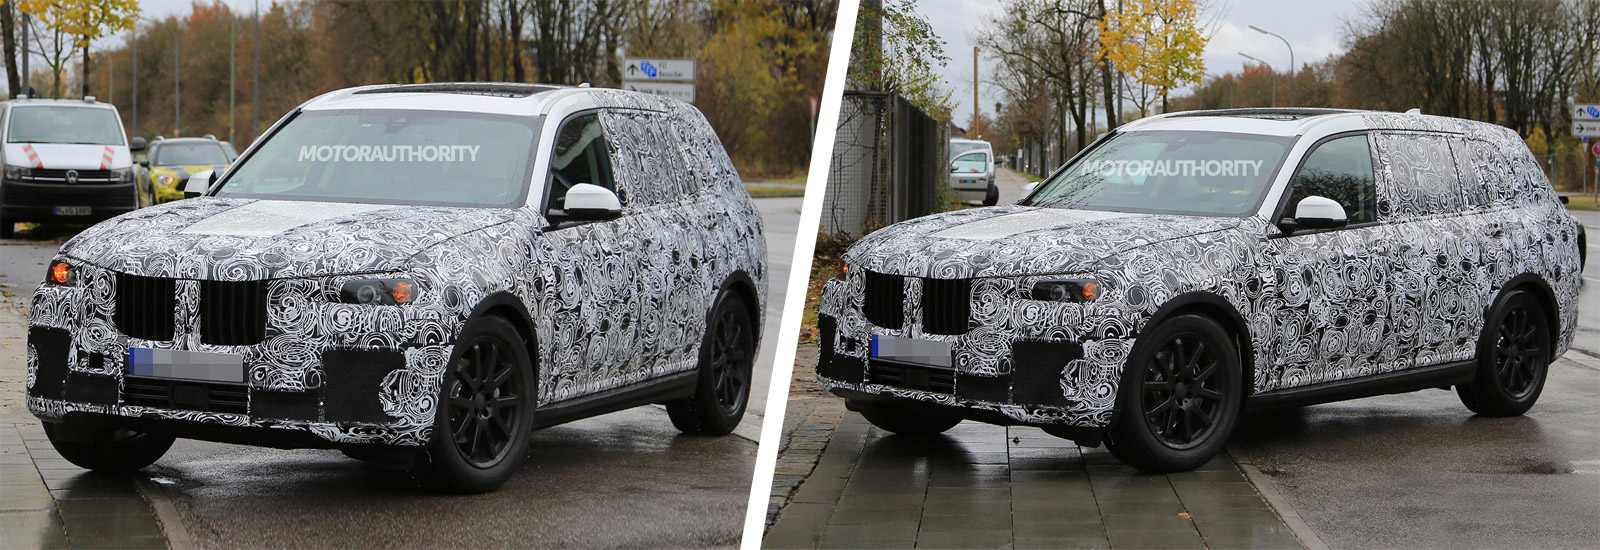 2018 bmw large suv. contemporary suv this sevenseat offering will be the largest car in german brandu0027s  range when it goes on sale late 2018 read for full detailsu2026 for 2018 bmw large suv